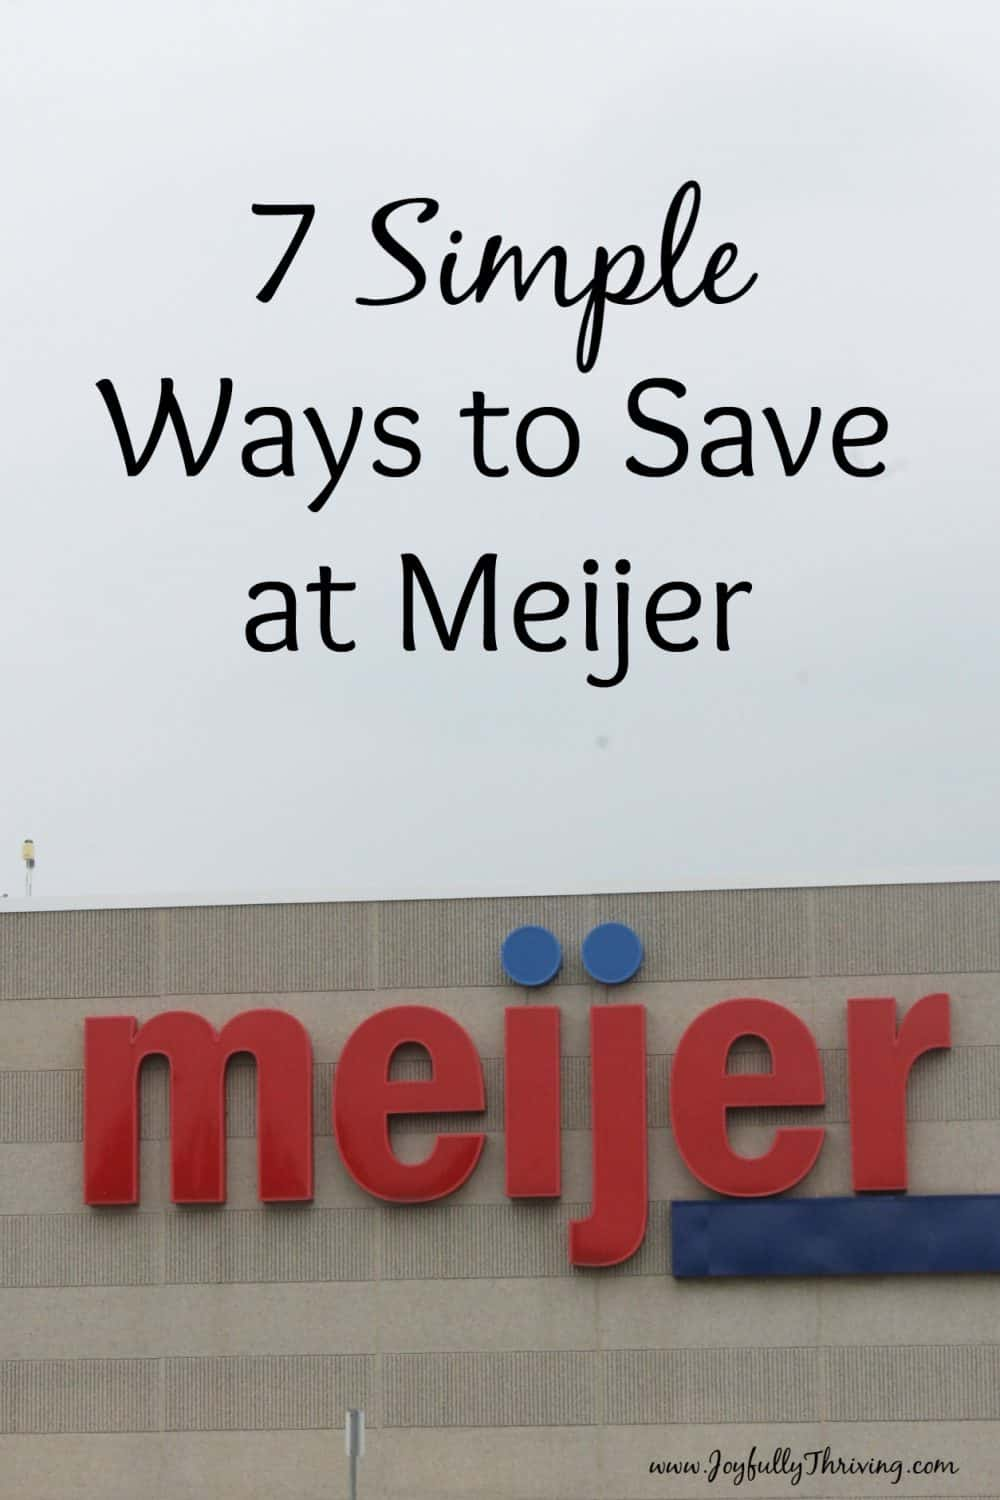 I love Meijer for all the money it saves me! And all these ways really are simple ways to save money at Meijer.